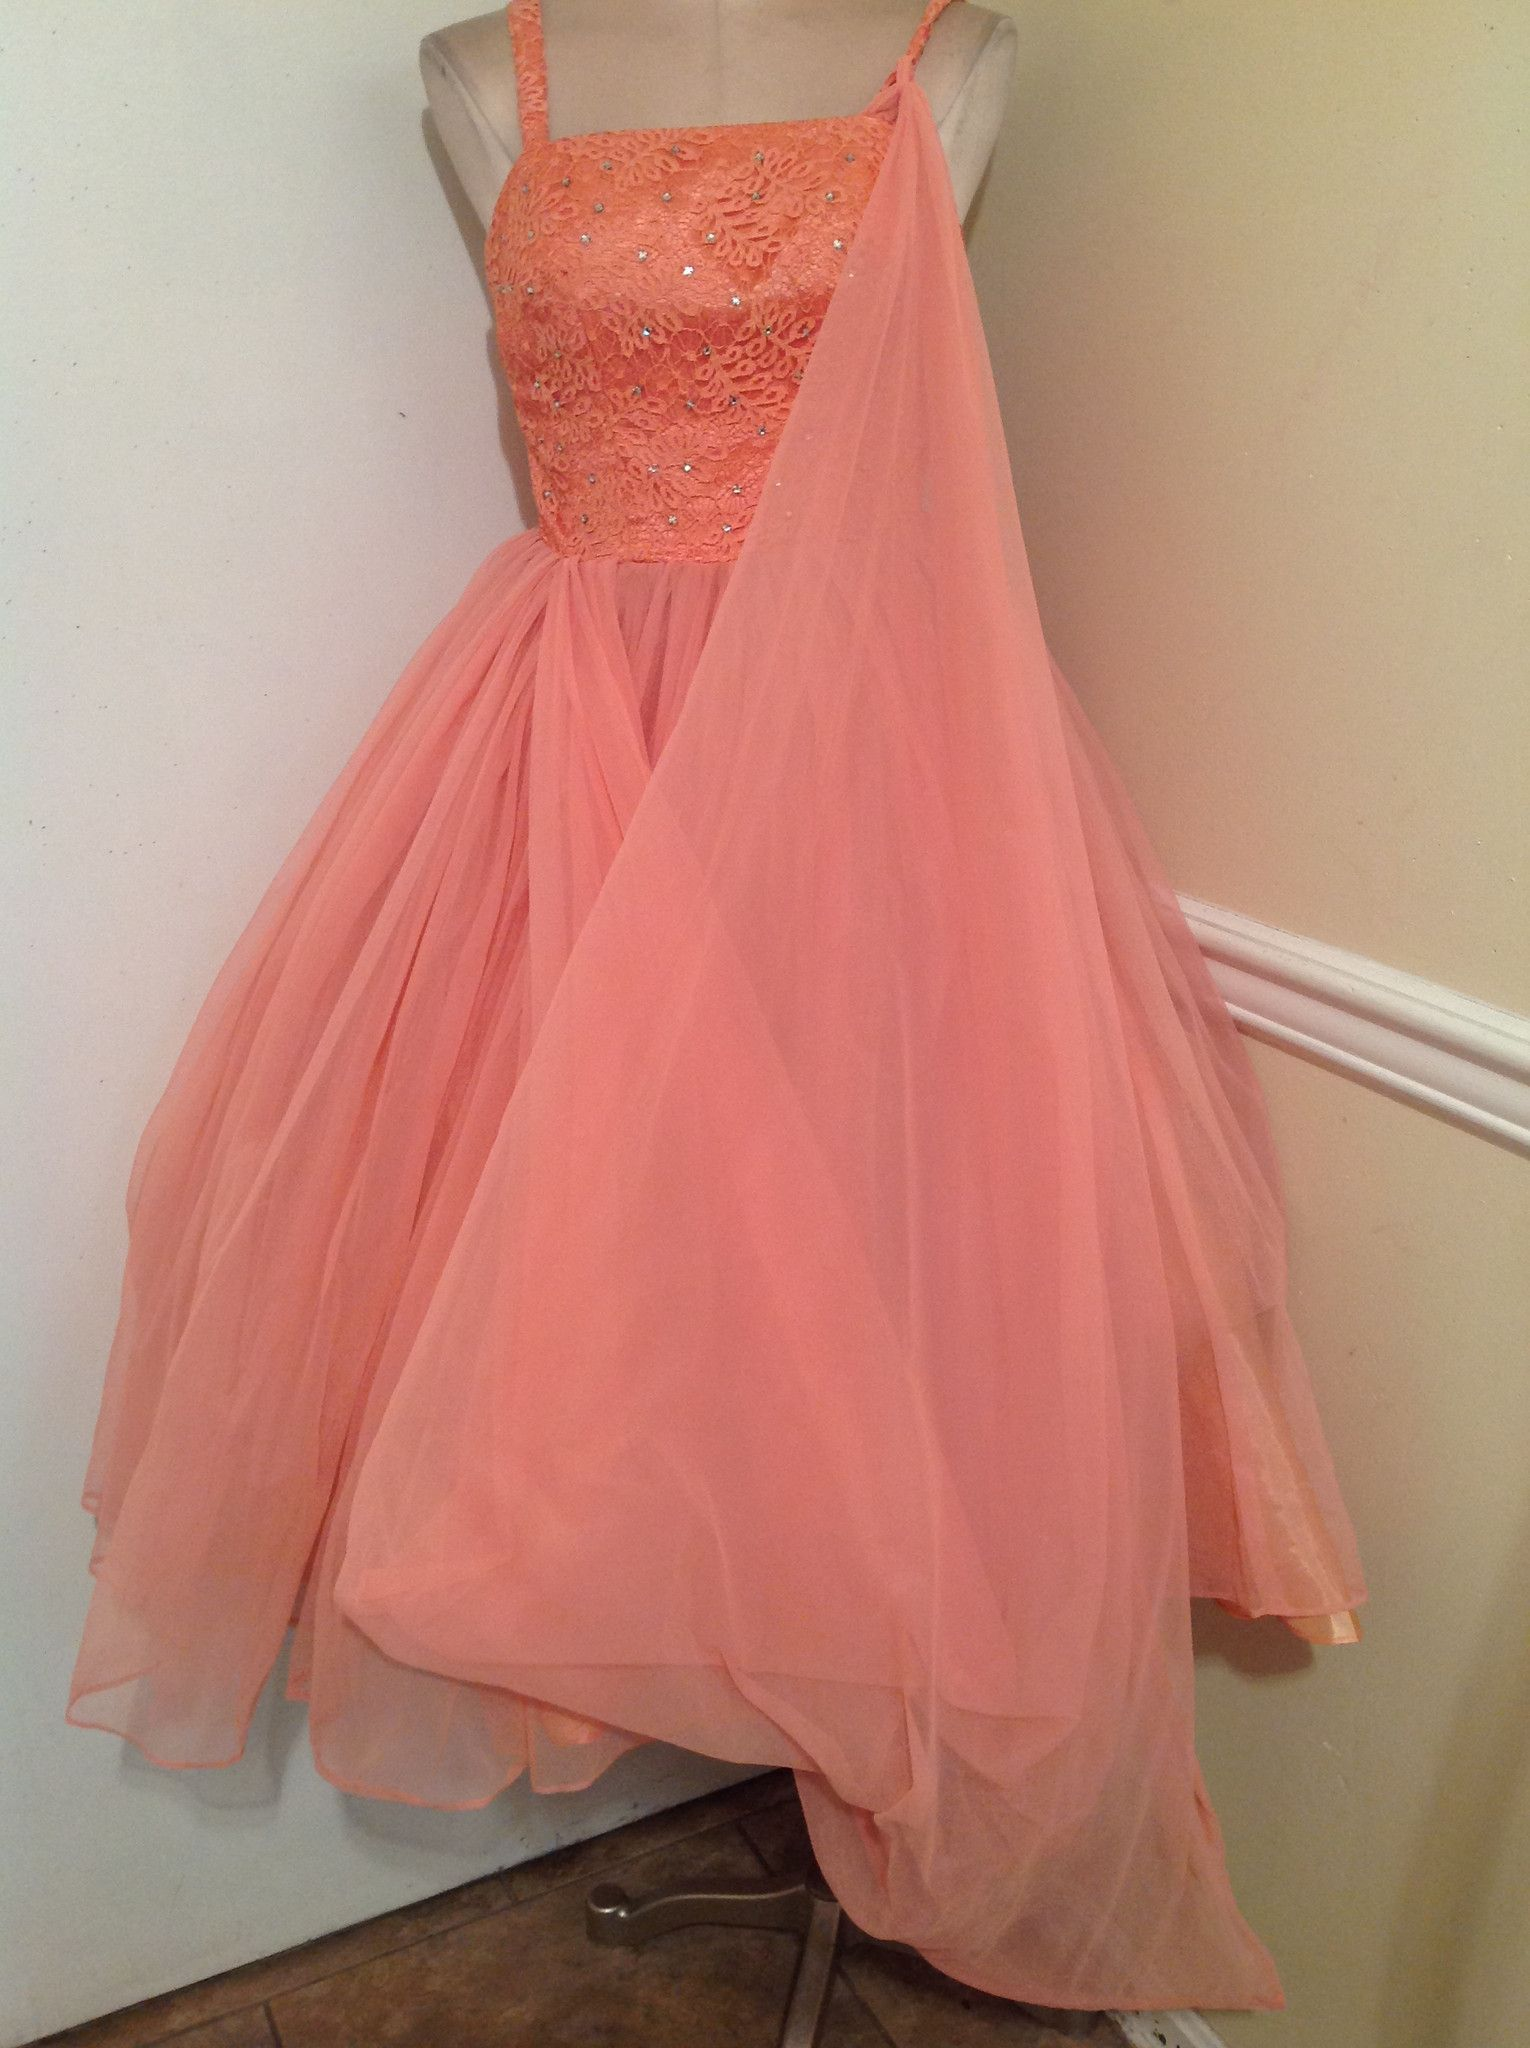 Vintage s peach dream sheer gown dress best fit small products